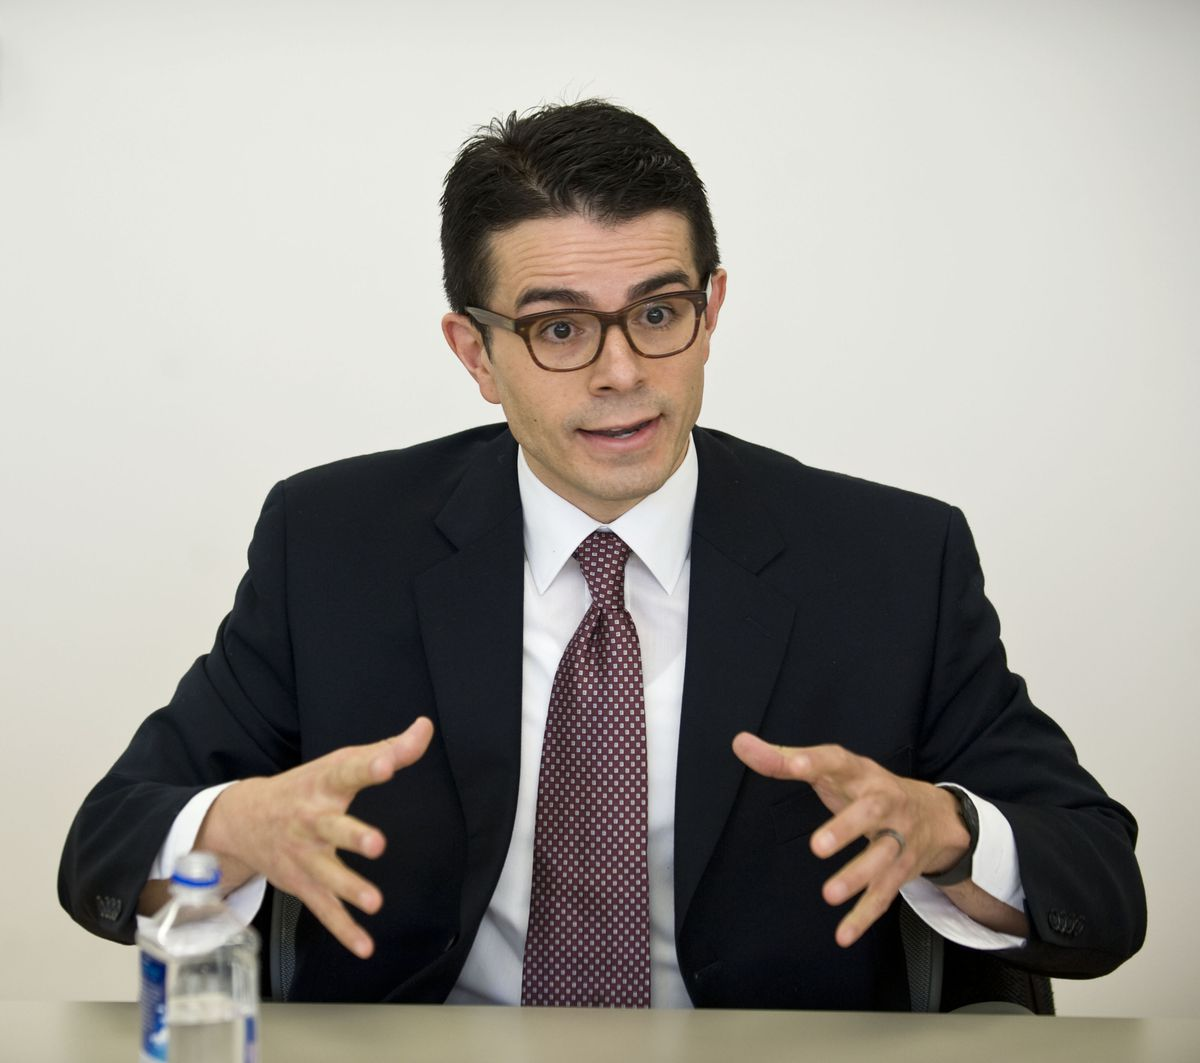 <small><strong>Michael Diaz is an aldermanic candidate for the 45th Ward in the City of Chicago.   Richard A. Chapman/Sun-Times</strong></small>